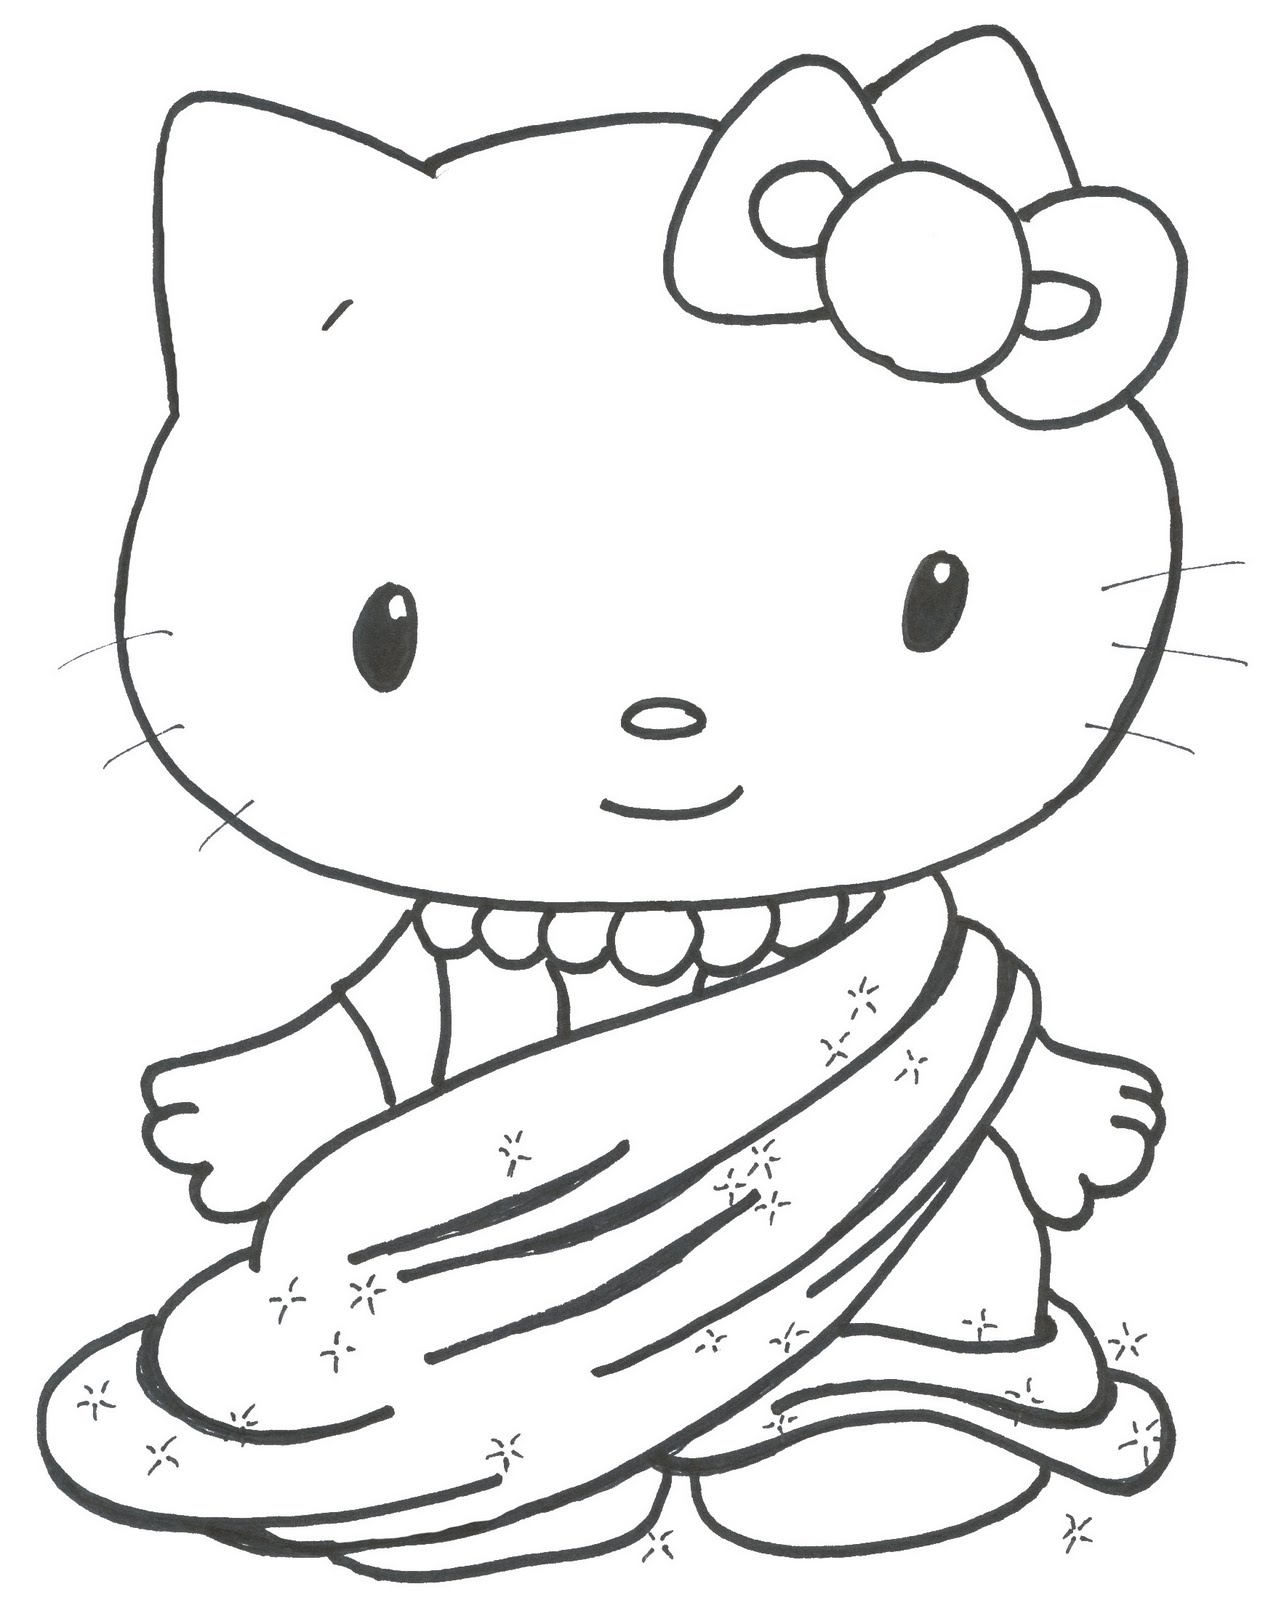 Kitty world cute kitten coloring pages for Cute kitten coloring pages